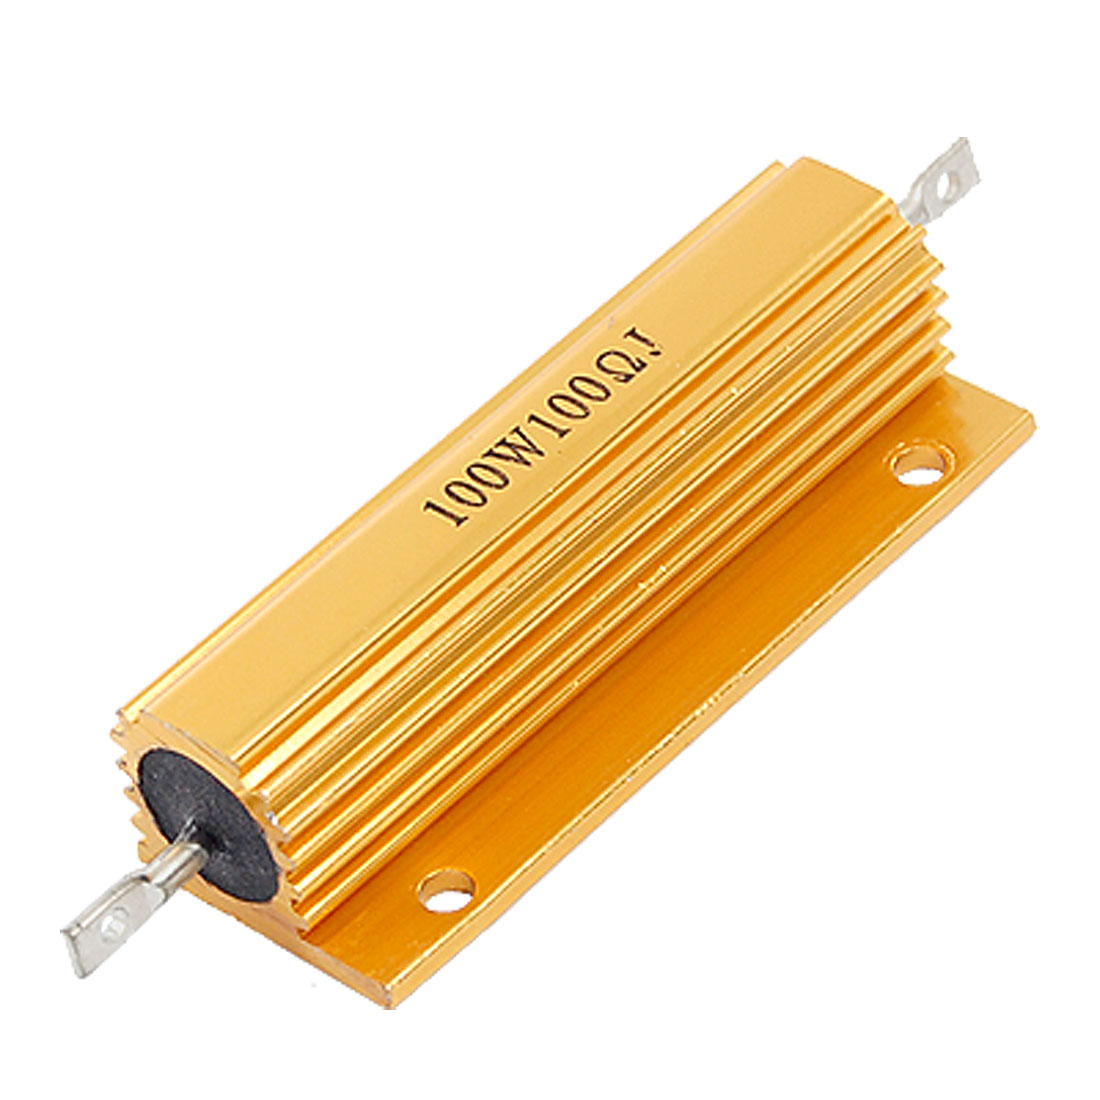 Chasis Mounted Aluminum Housed Wirewound Resistor 100W 100 Ohm 5%